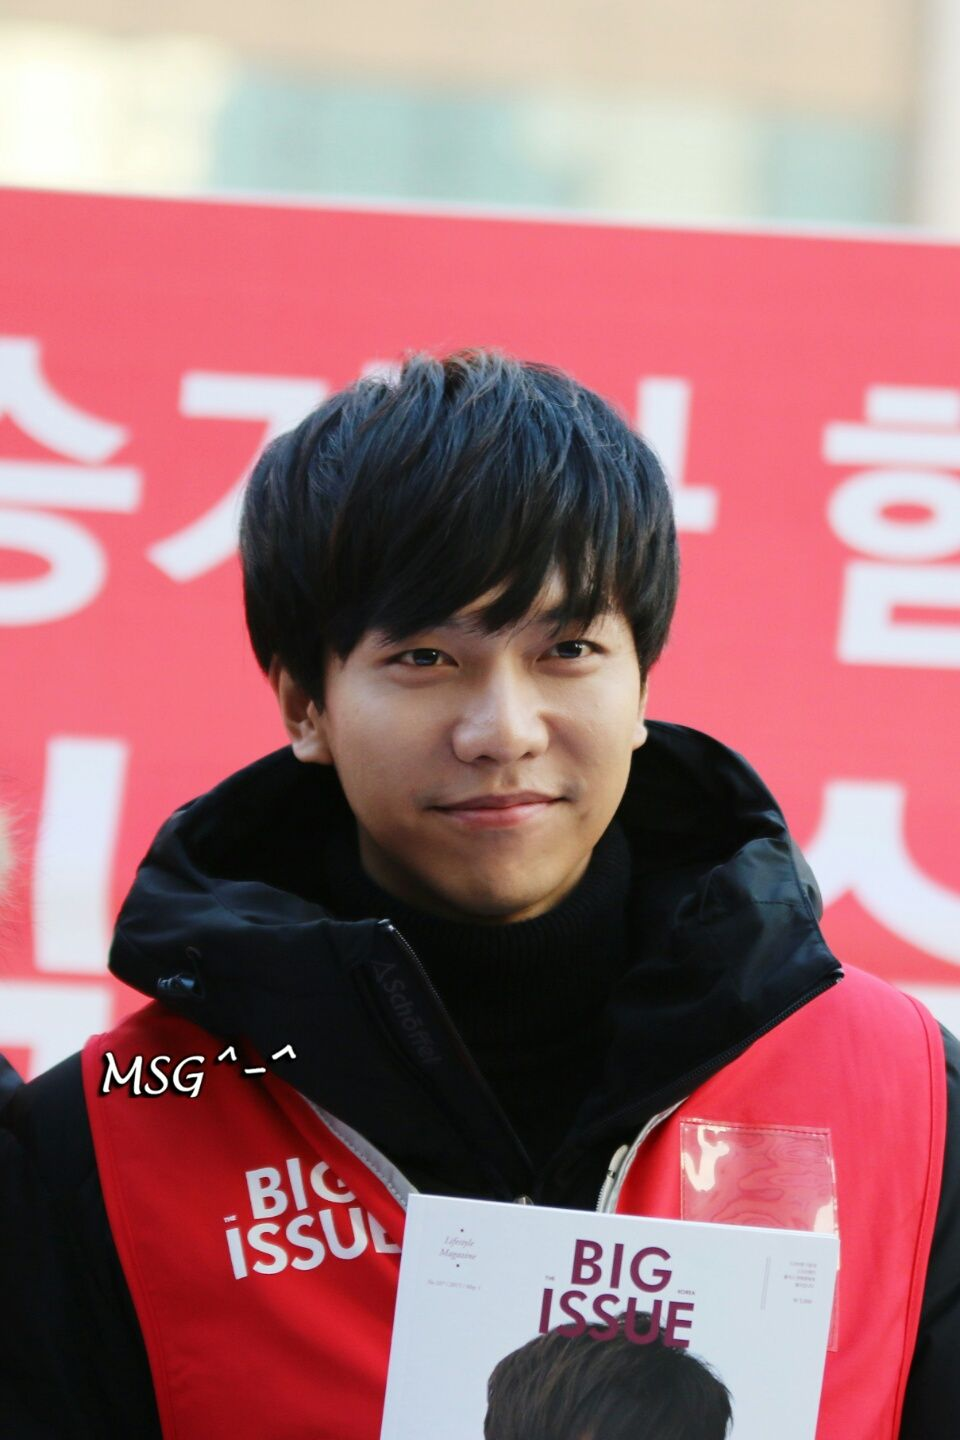 Dispatch Special: Irresistible Dimples - Lee Seung Gi